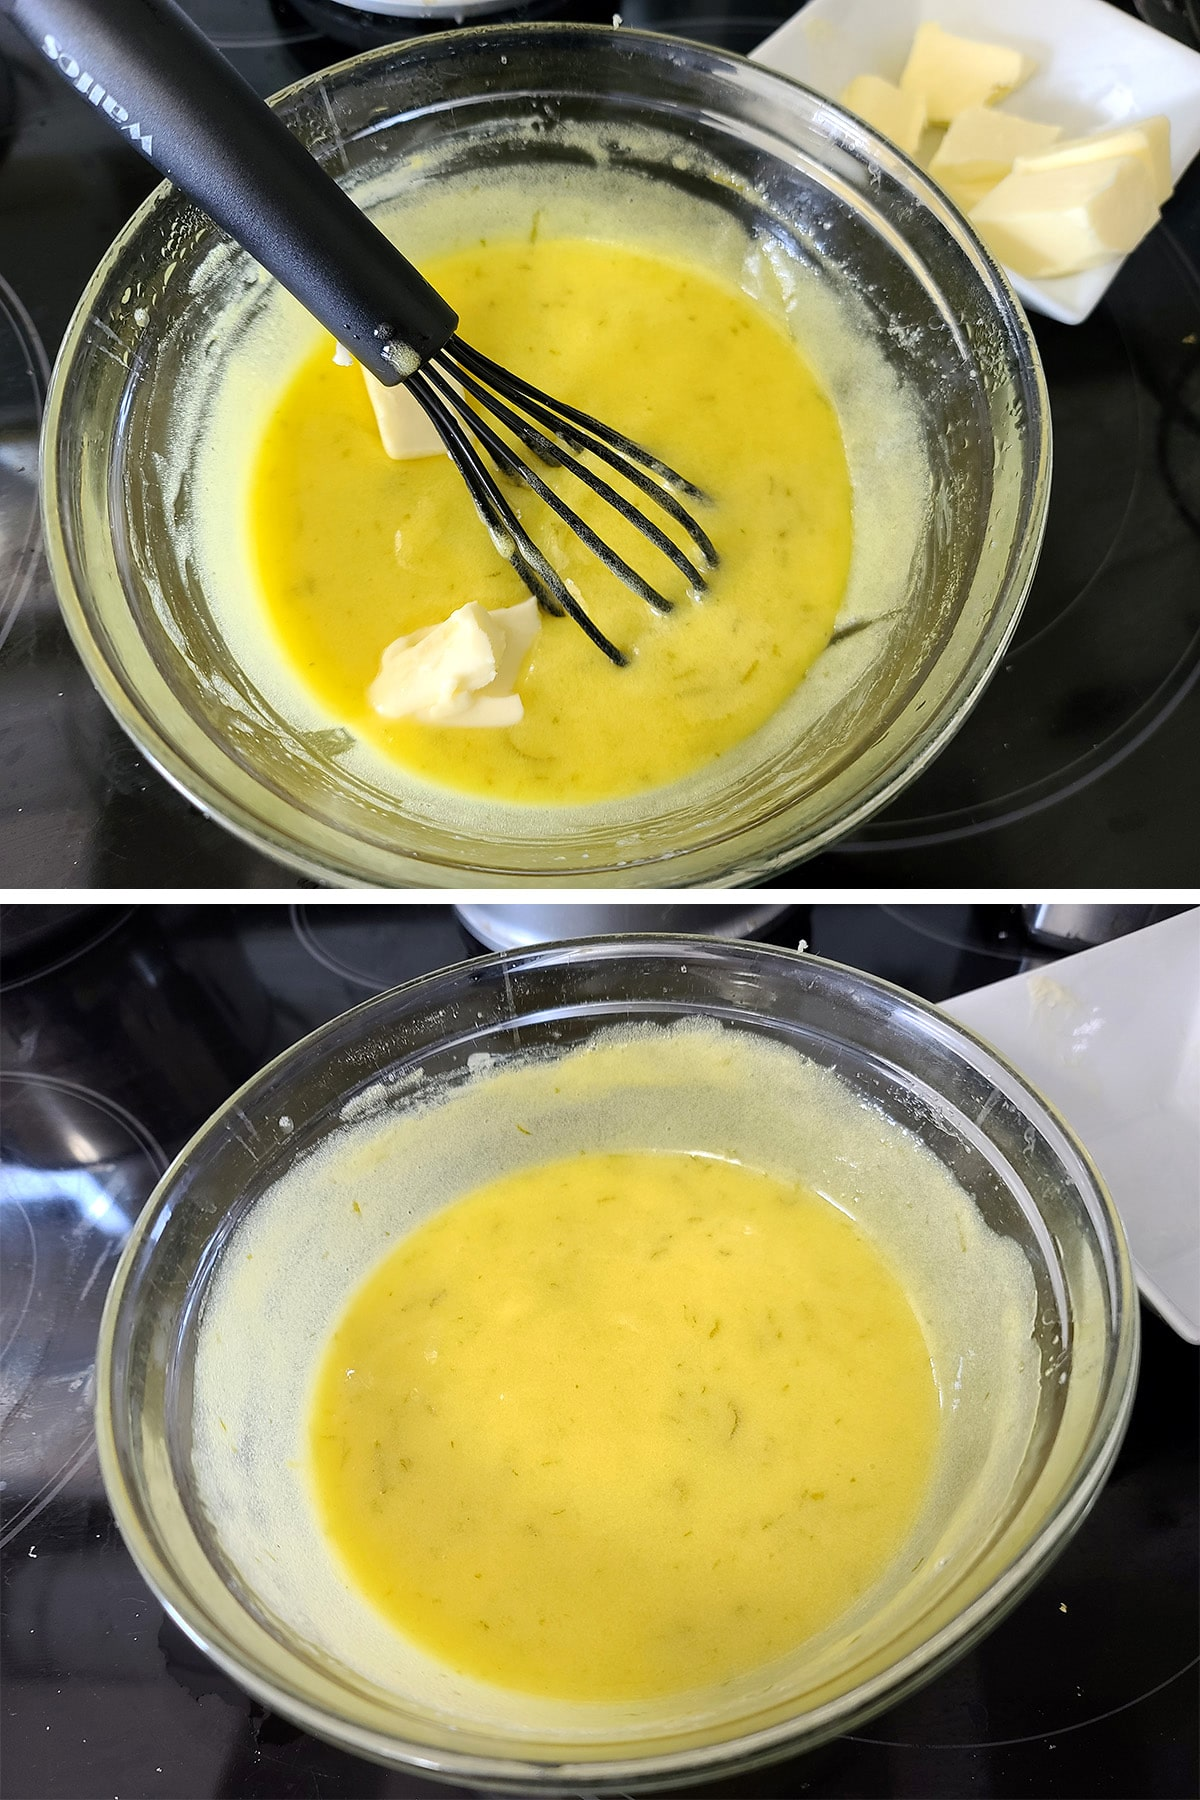 Butter being whisked into the lime curd.